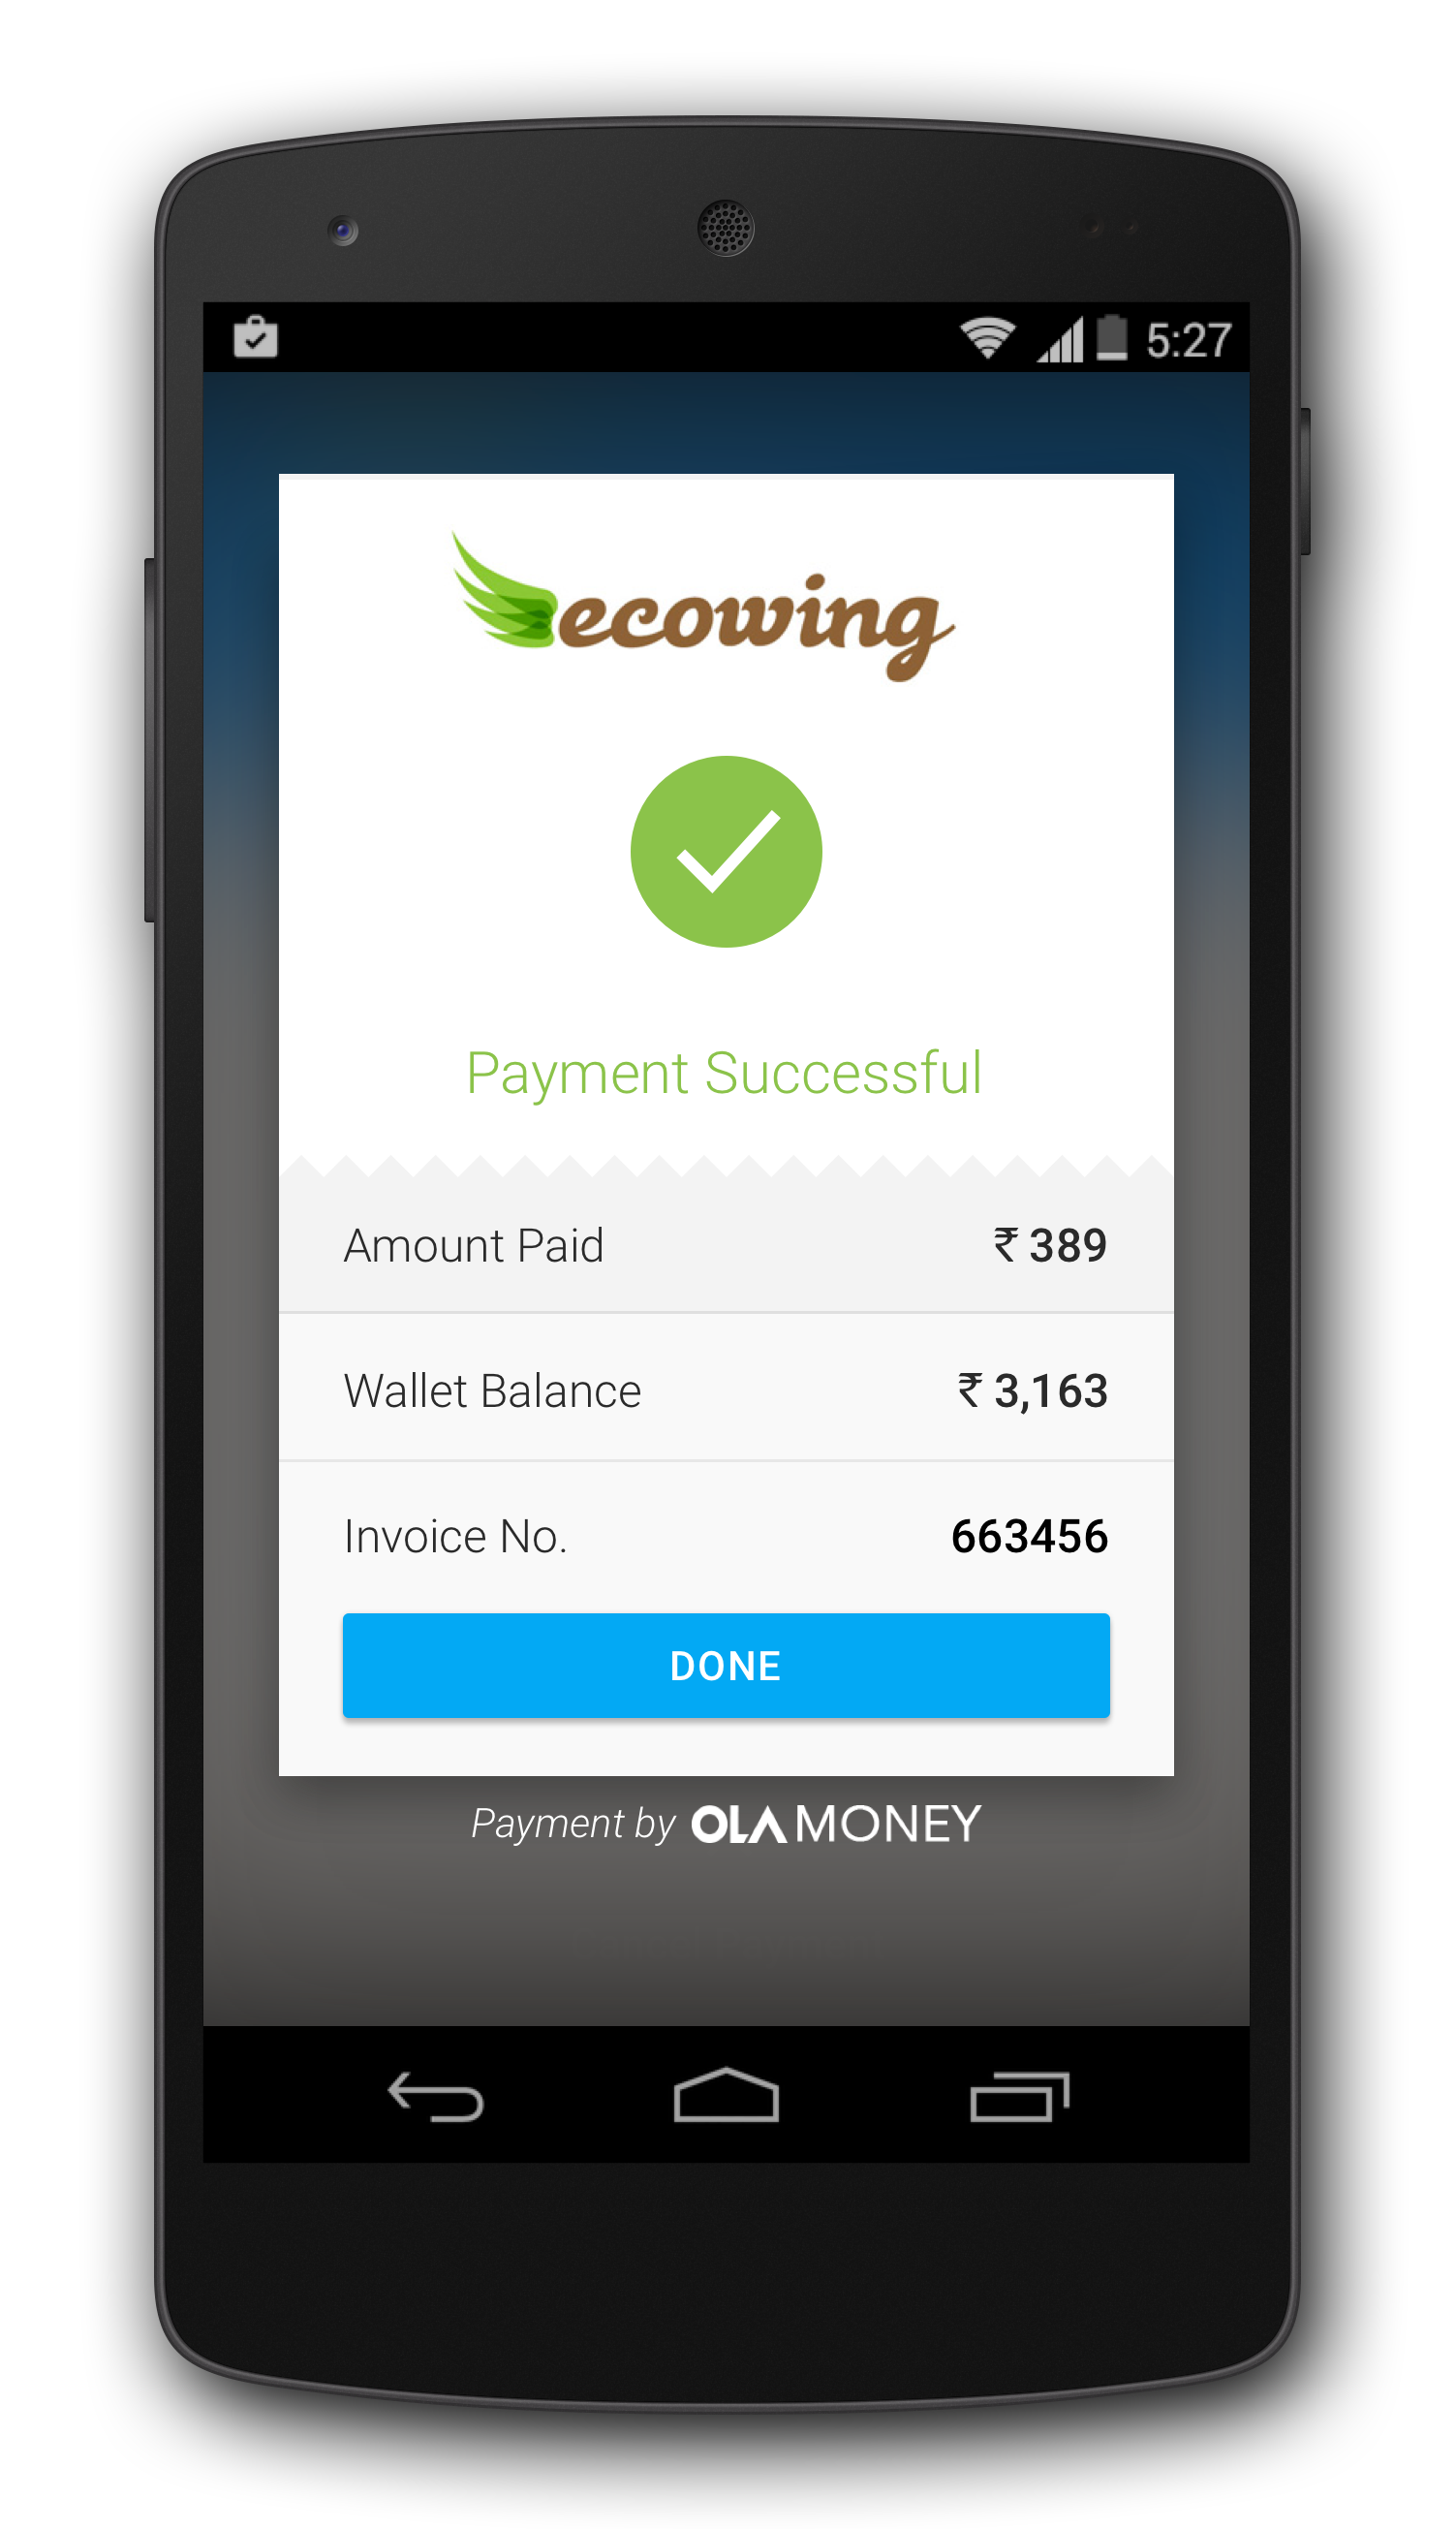 And enjoy a seamless, one-click payment experience!